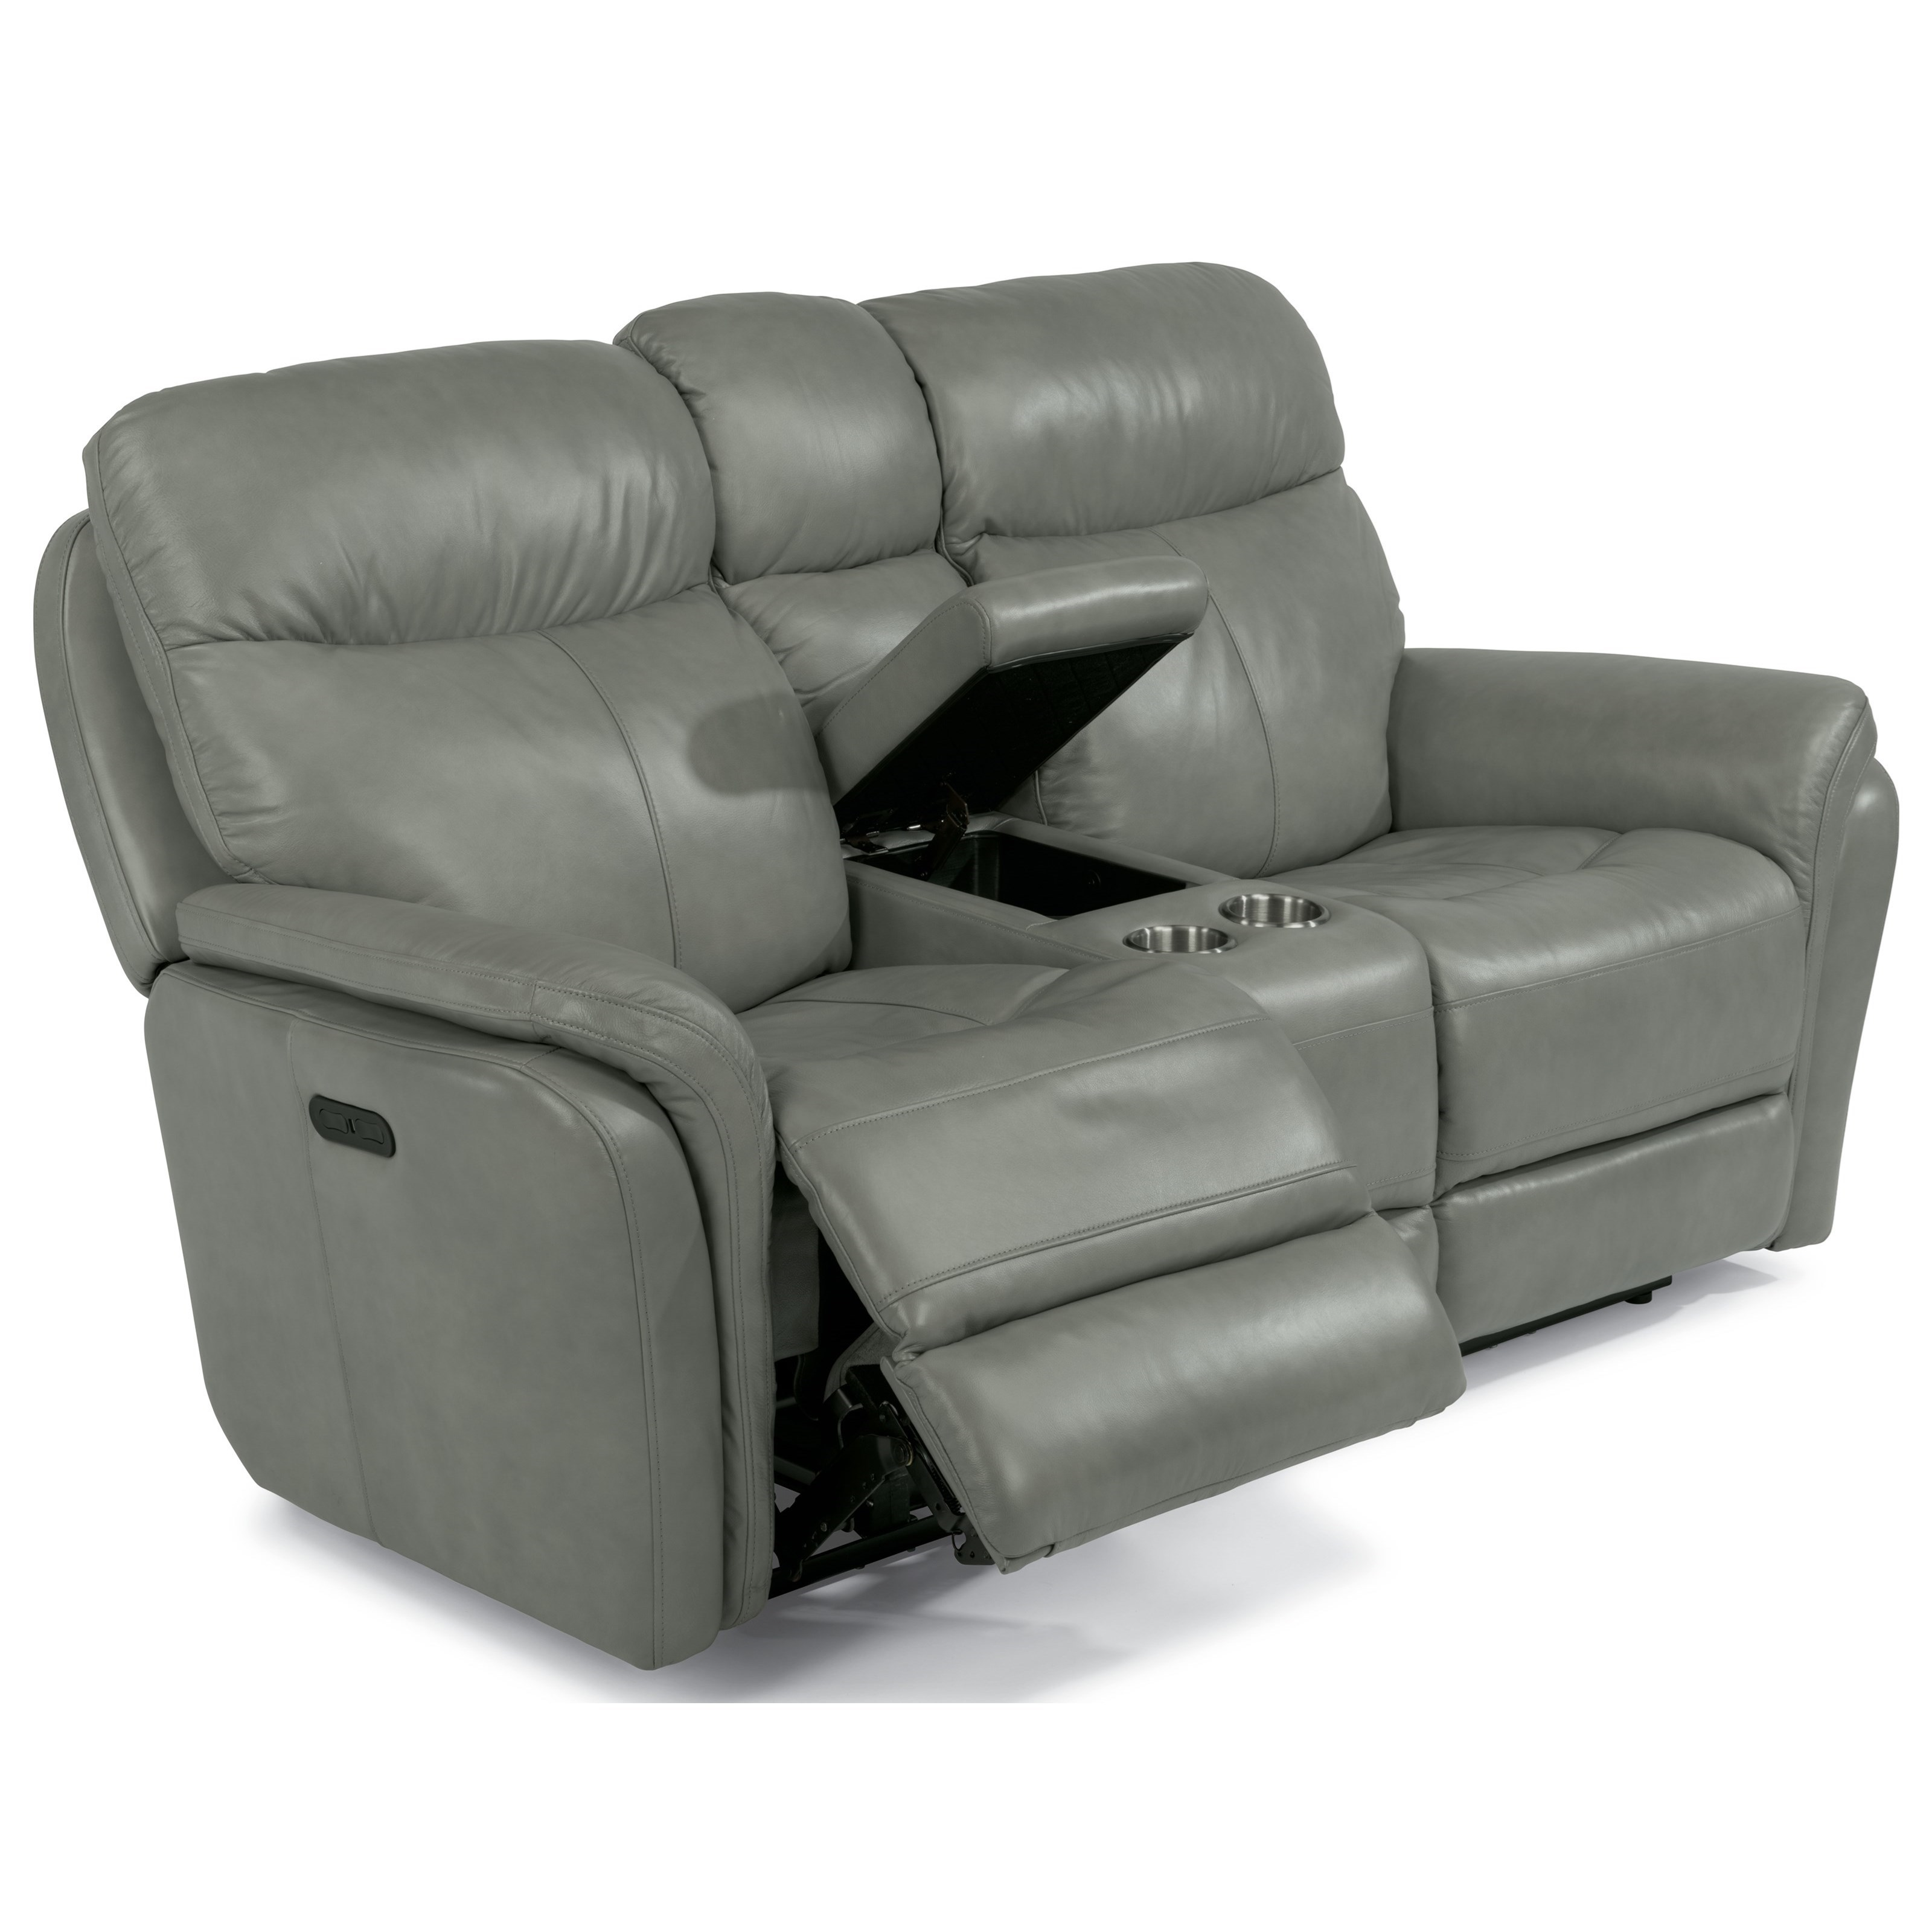 Latitudes-Zoey Power Reclining Love Seat with Console by Flexsteel at Walker's Furniture